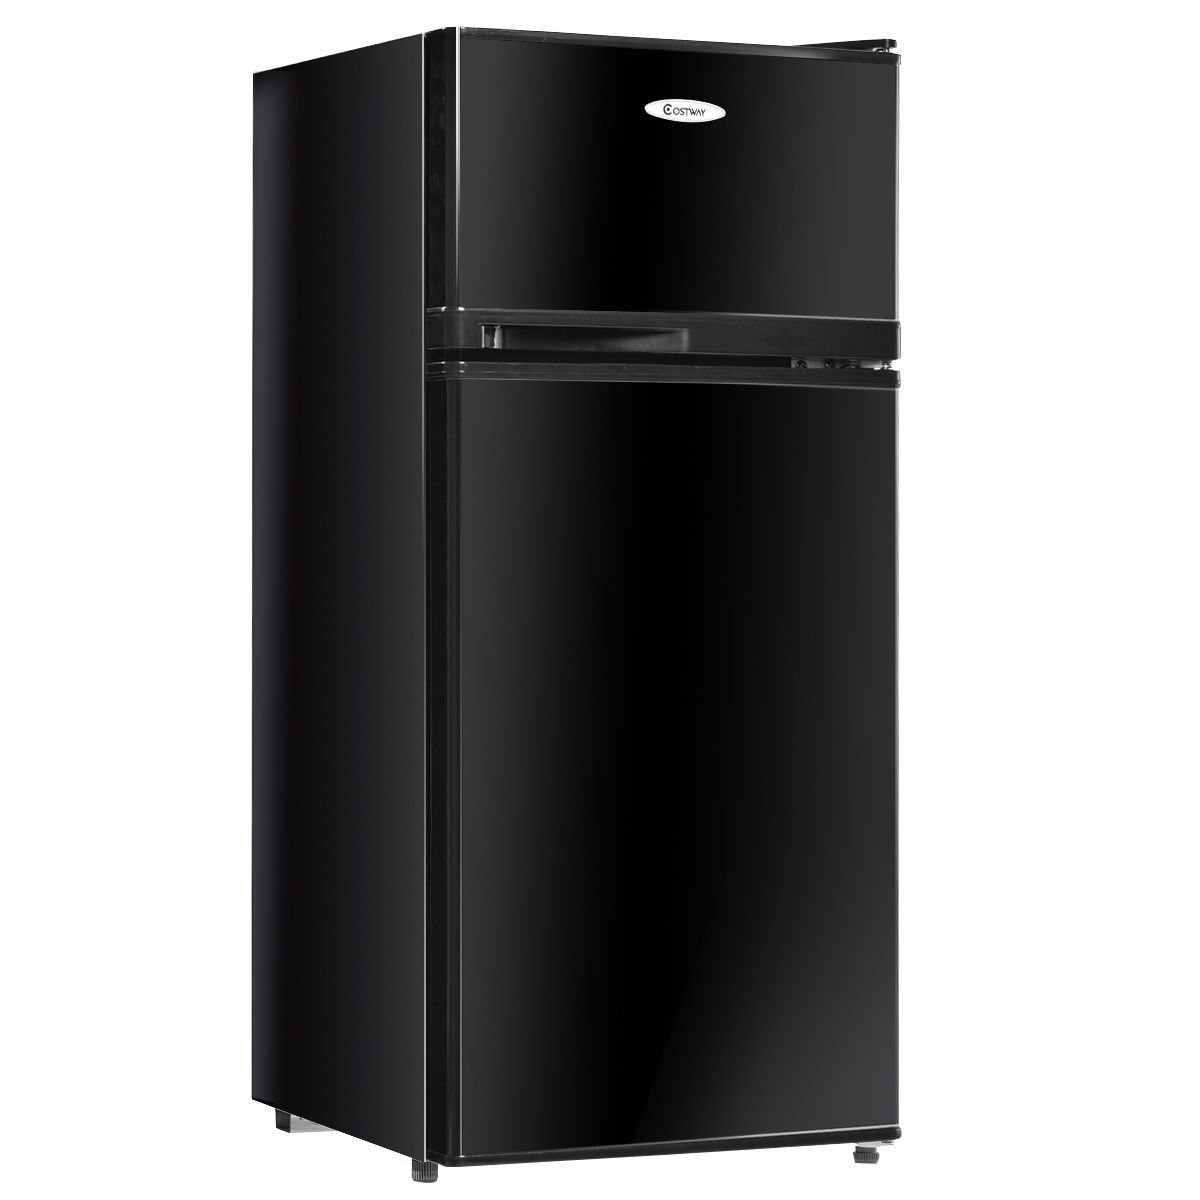 Costway 3.4 cu. ft. 2 Door Compact Mini Refrigerator Freezer Cooler (Black)